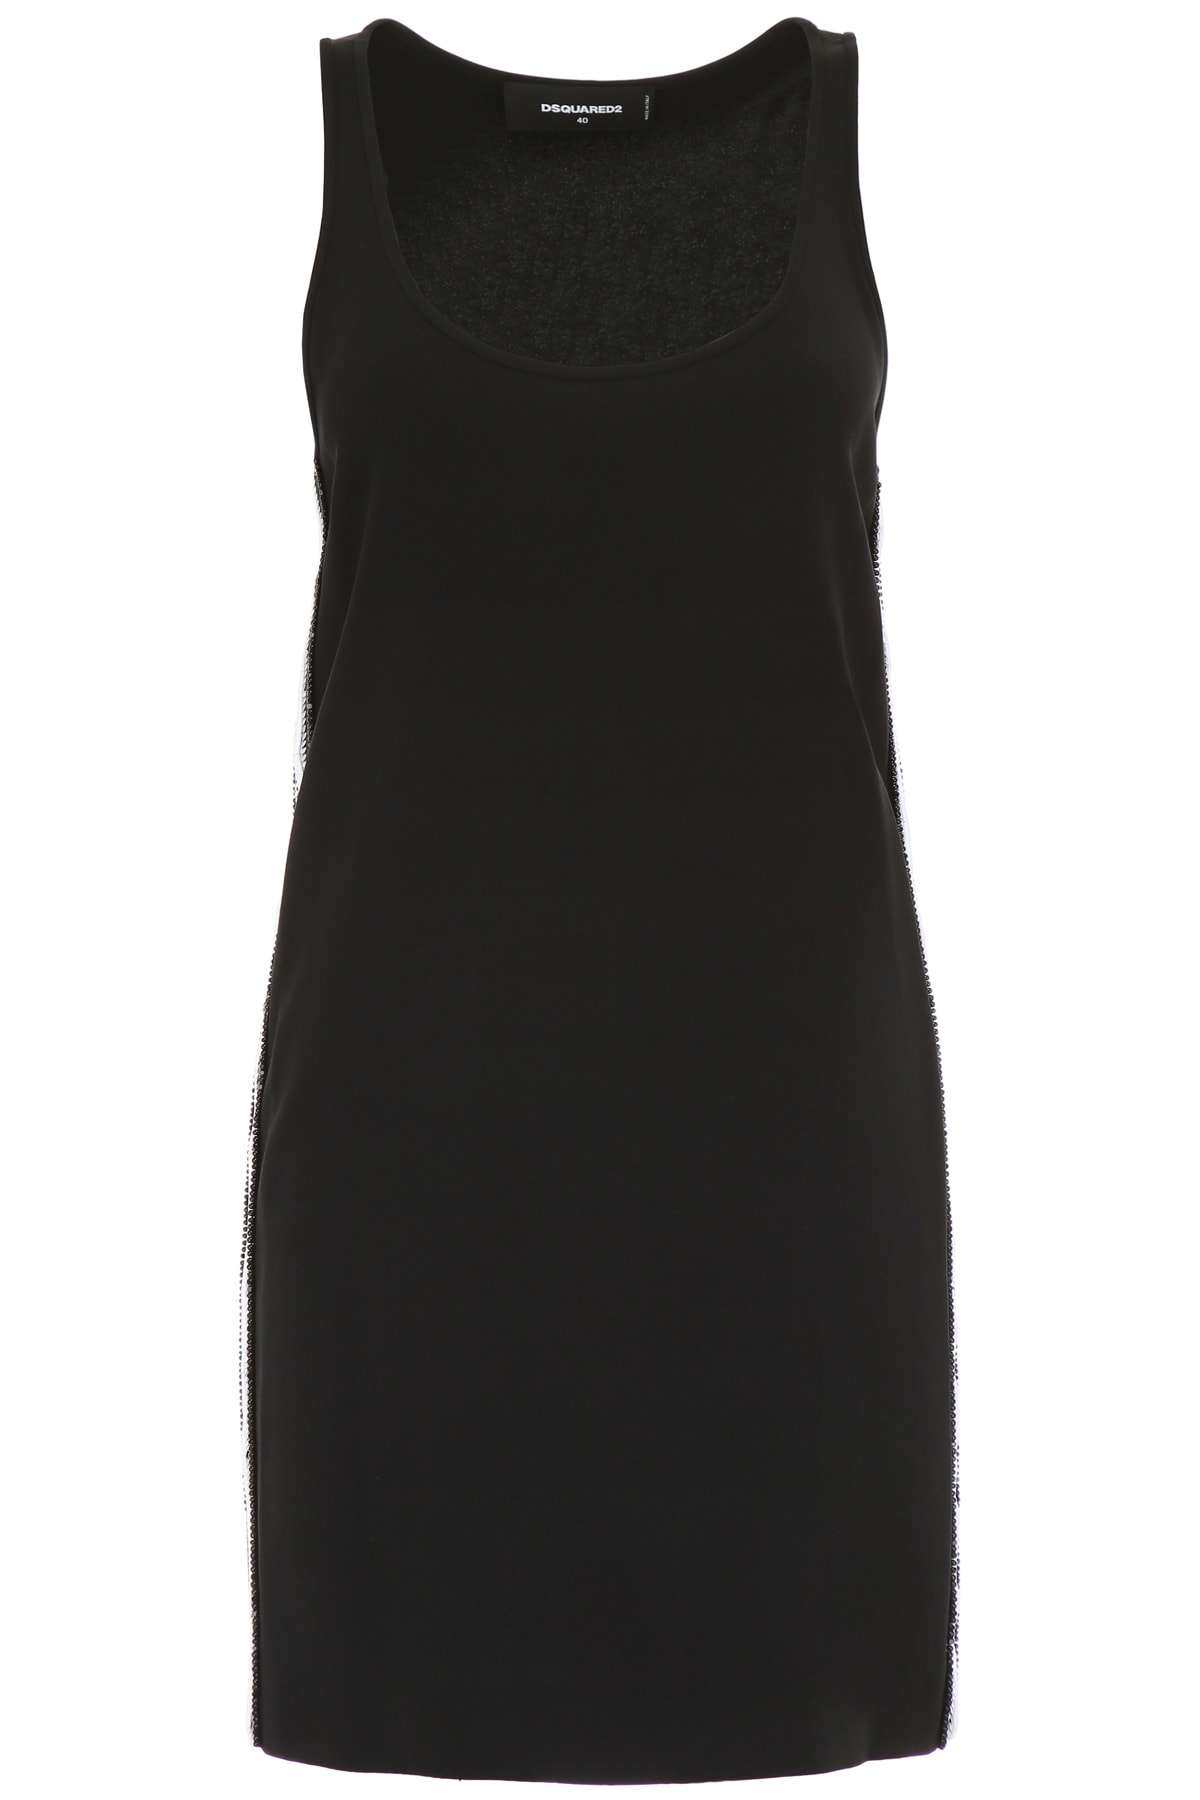 Photo of  Dsquared2 Disco Sporty Tank Dress- shop Dsquared2  online sales